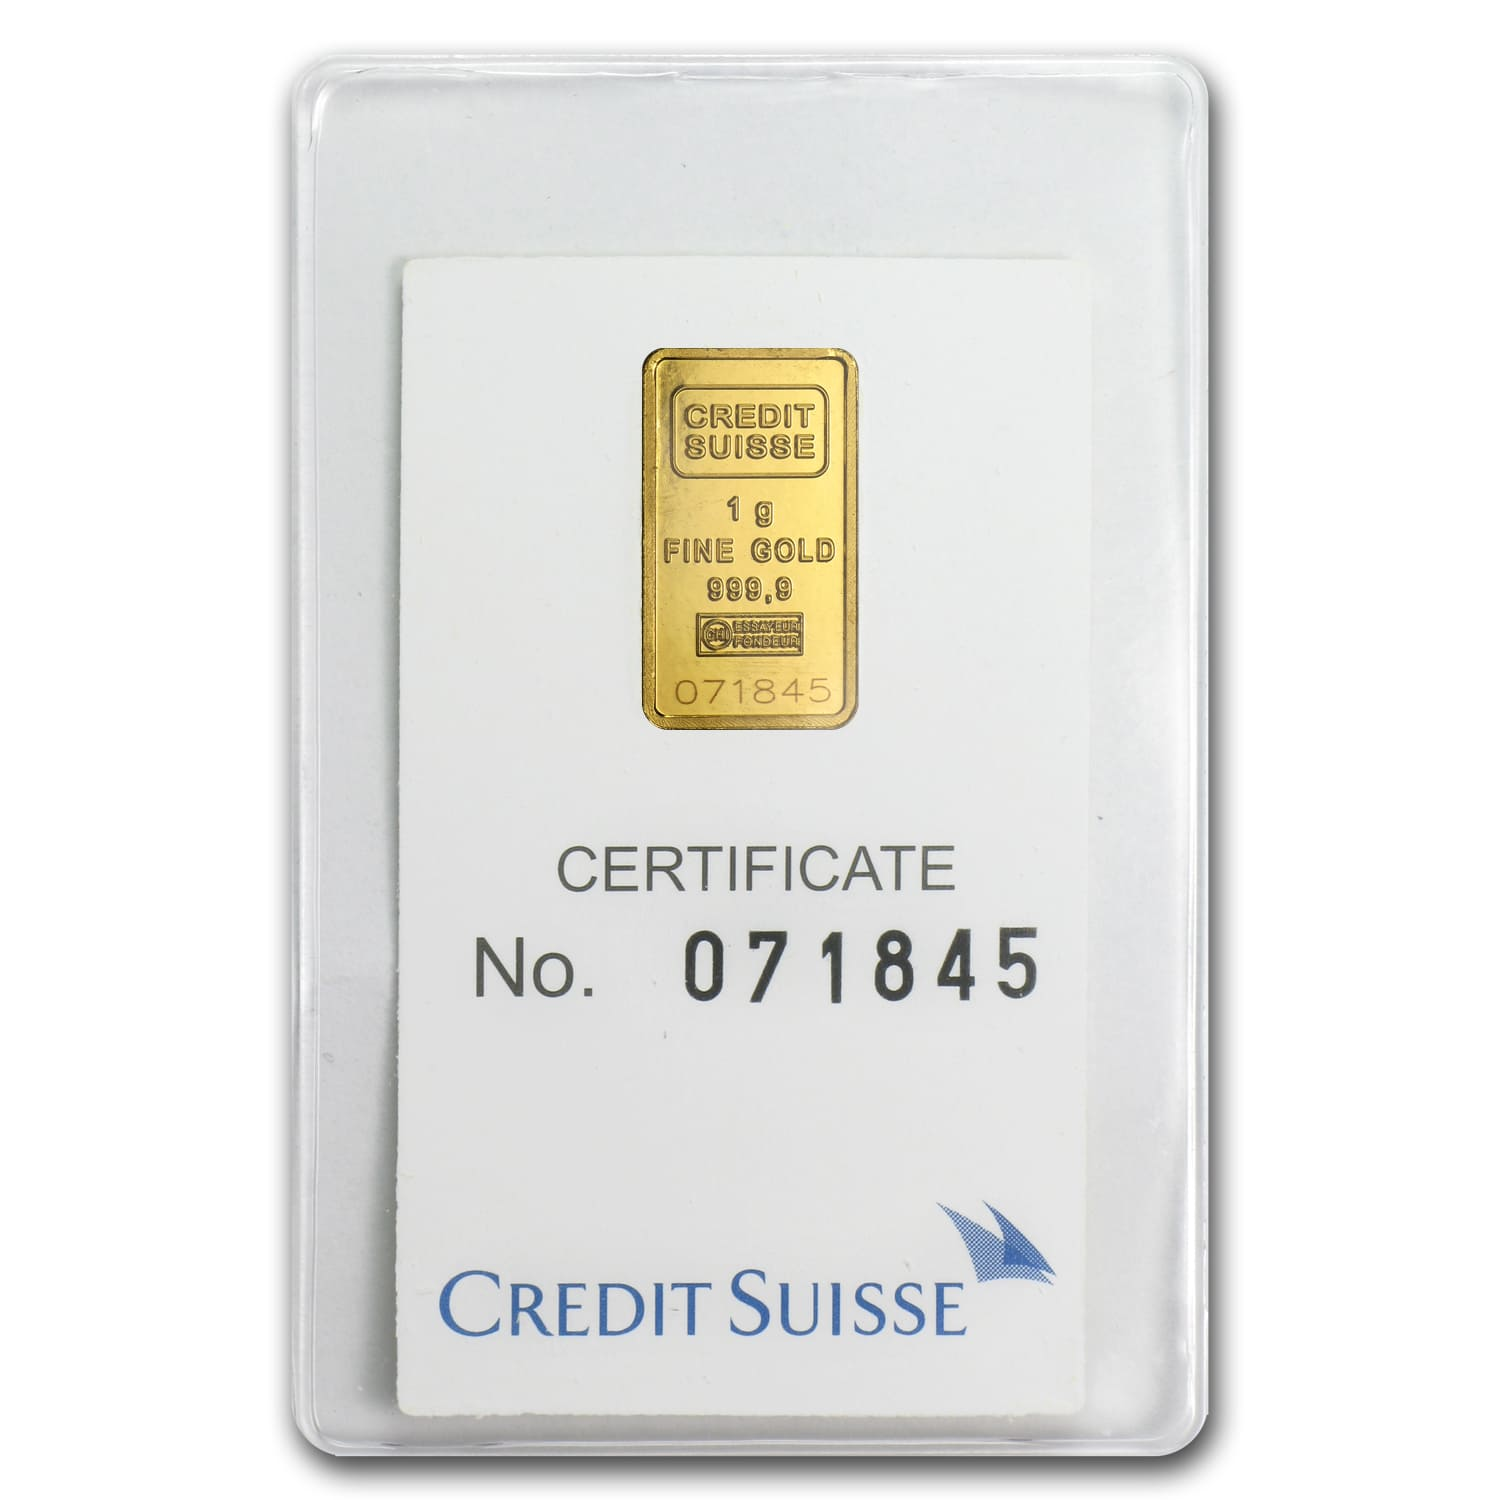 1 gram Gold Bar - Credit Suisse Statue of Liberty (In Assay)